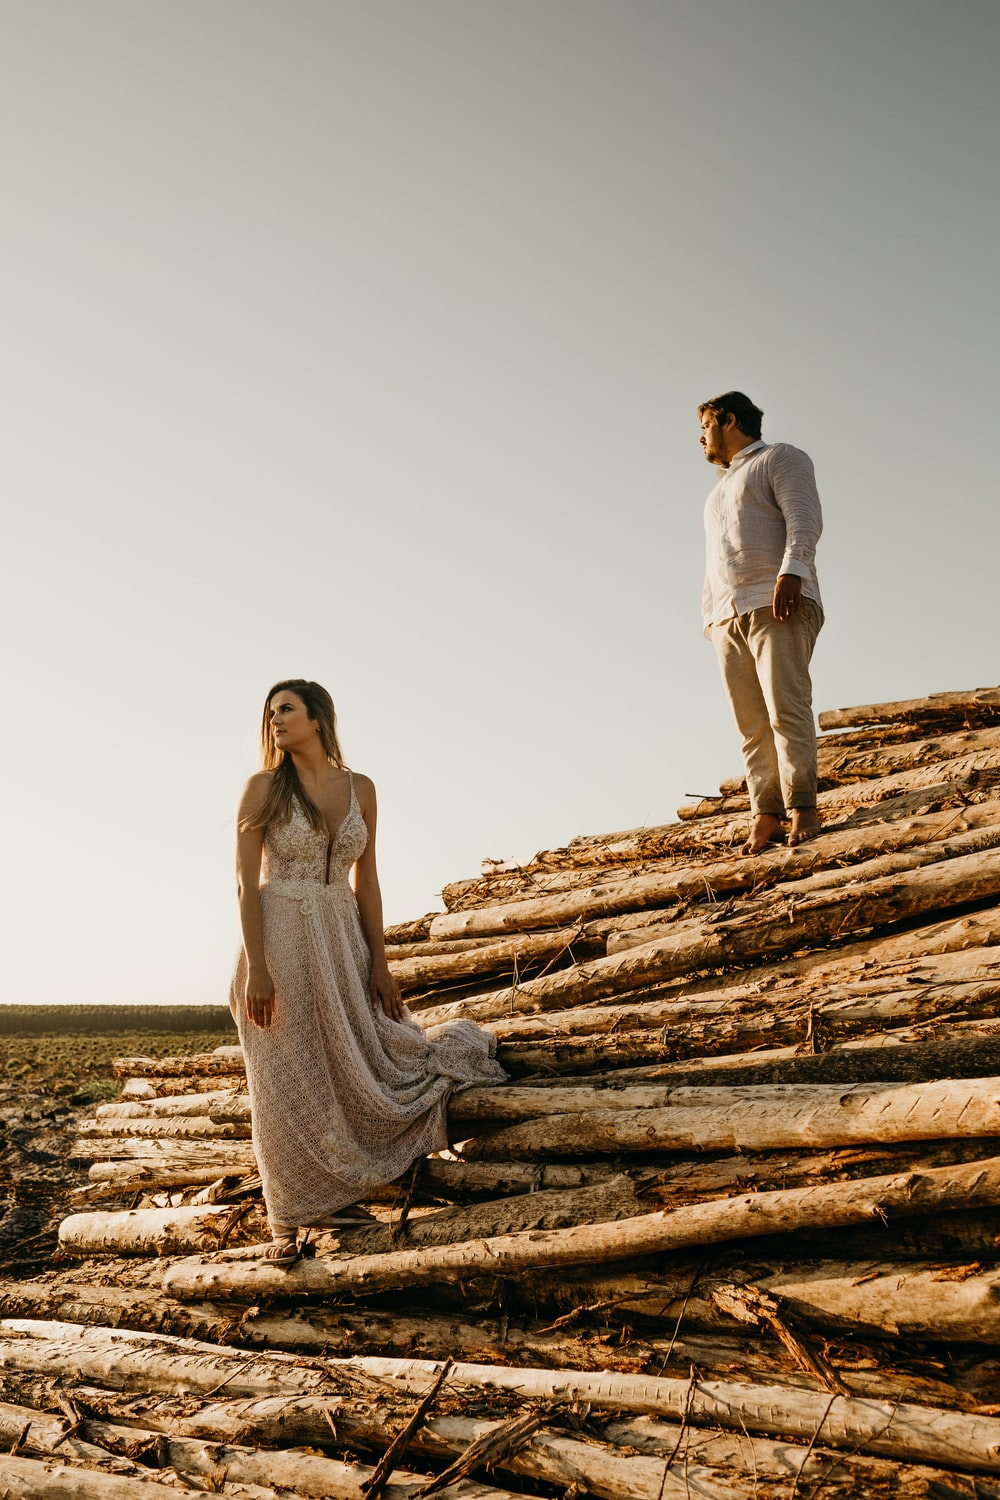 man and woman standing on pile of wood logs